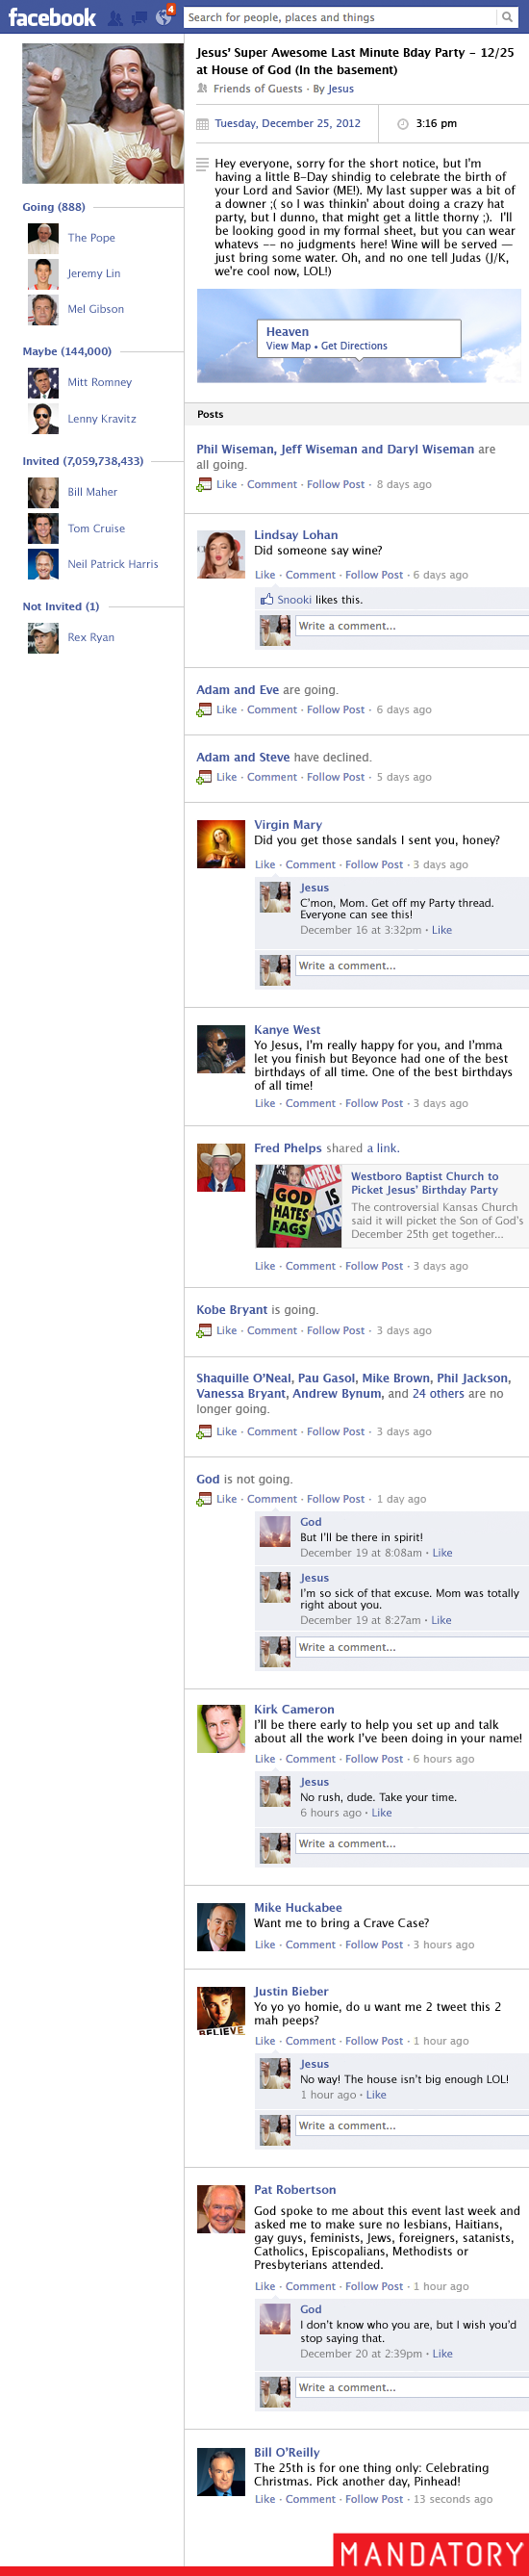 jesus birthday facebook event, god, westboro baptist church, heaven, mitt romney